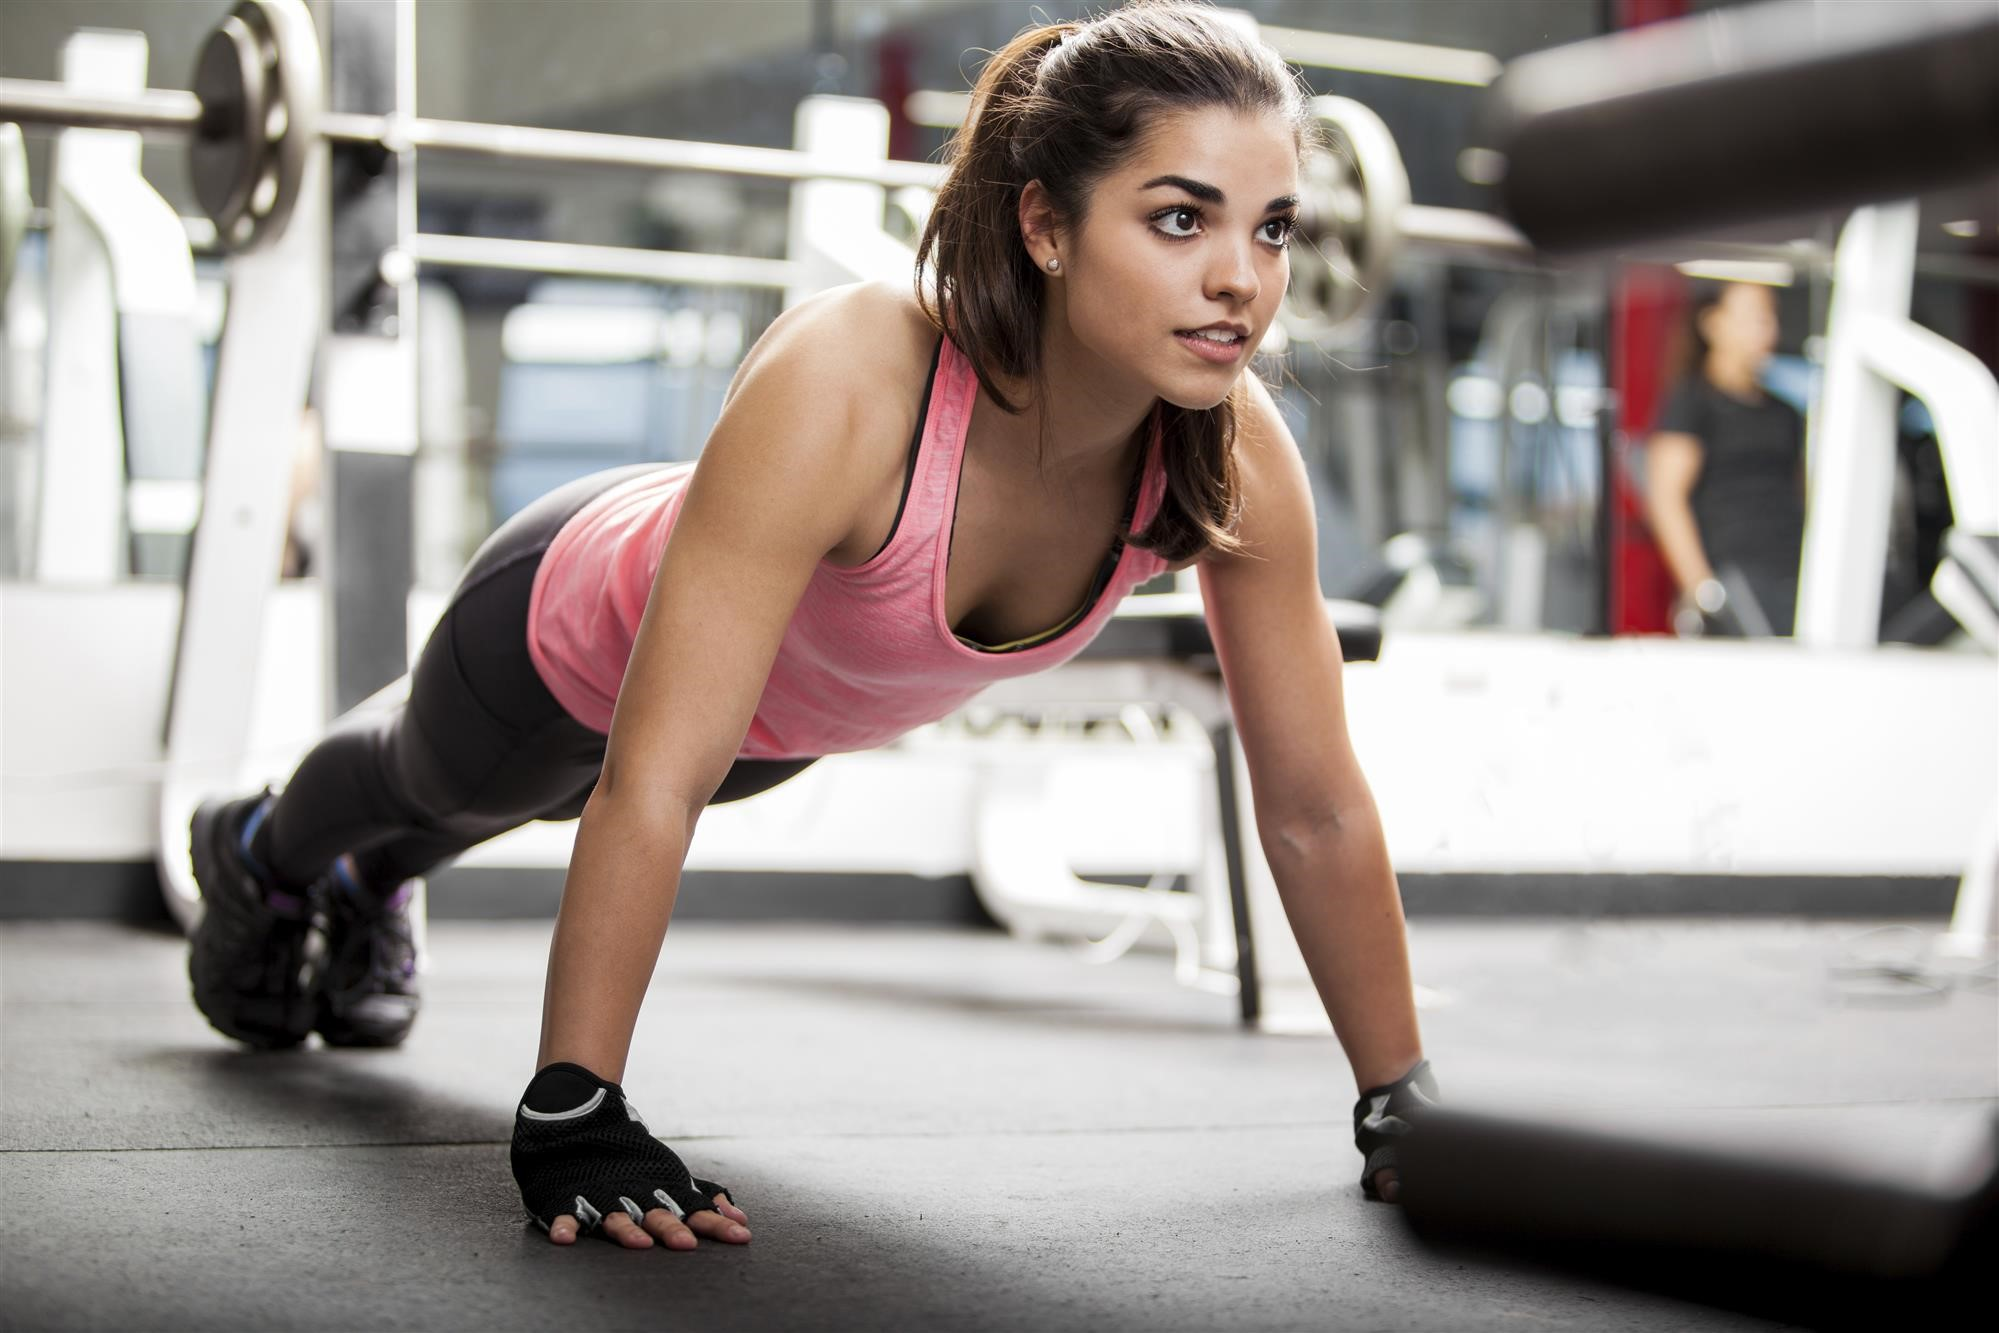 Workouts For Women Muscle & Strength's 10 Week Women's Fat Loss Workout This 10 week women's fat loss training program is perfect for any healthy woman who is looking to transform her body through a good weight lifting program.